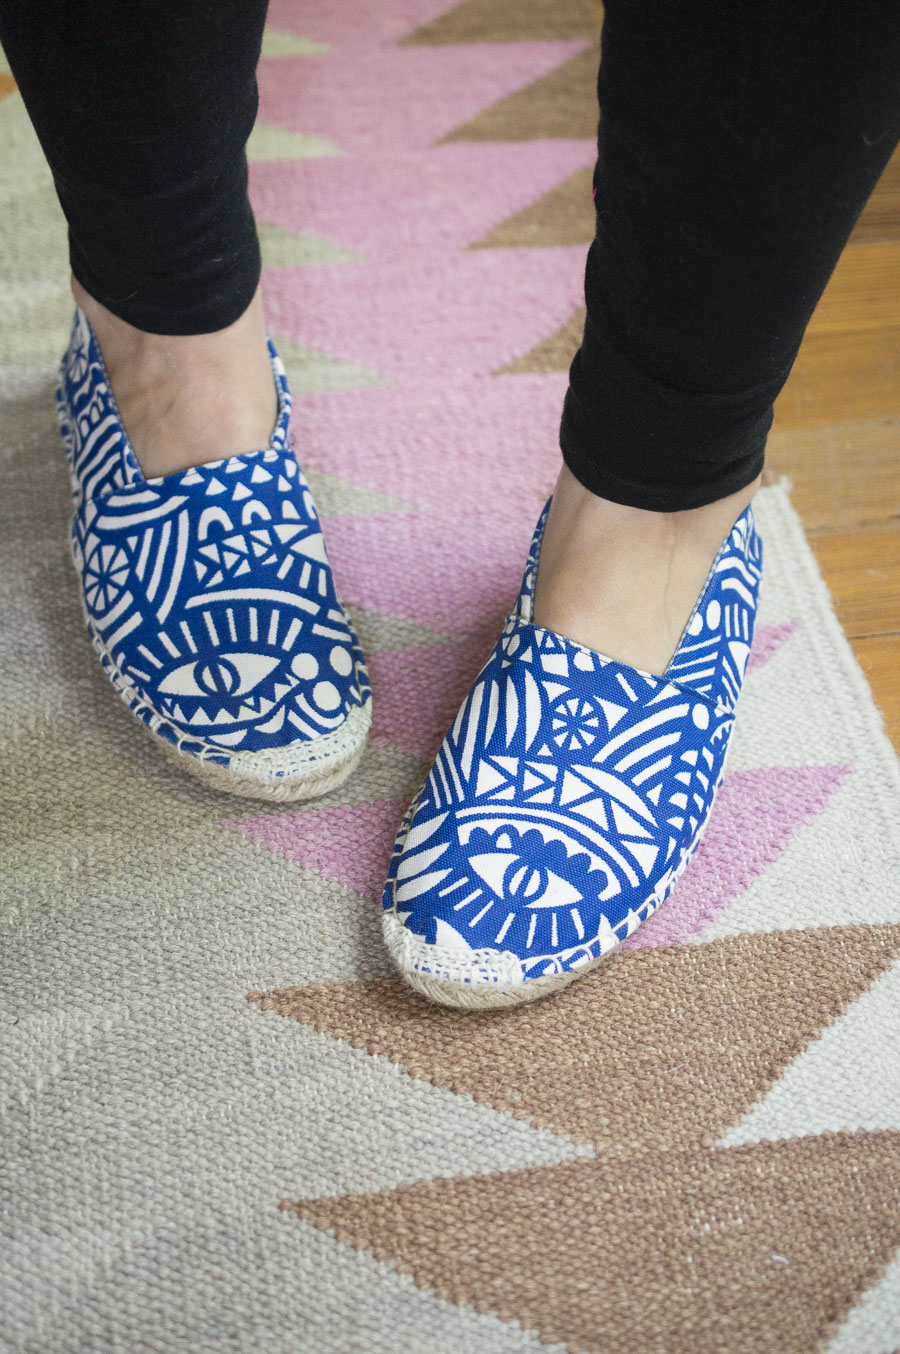 Evil Eye Espadrilles || THE ESPADRILLES KIT || Everything You Need to Make Your Own Shoes || A Happy Stitch